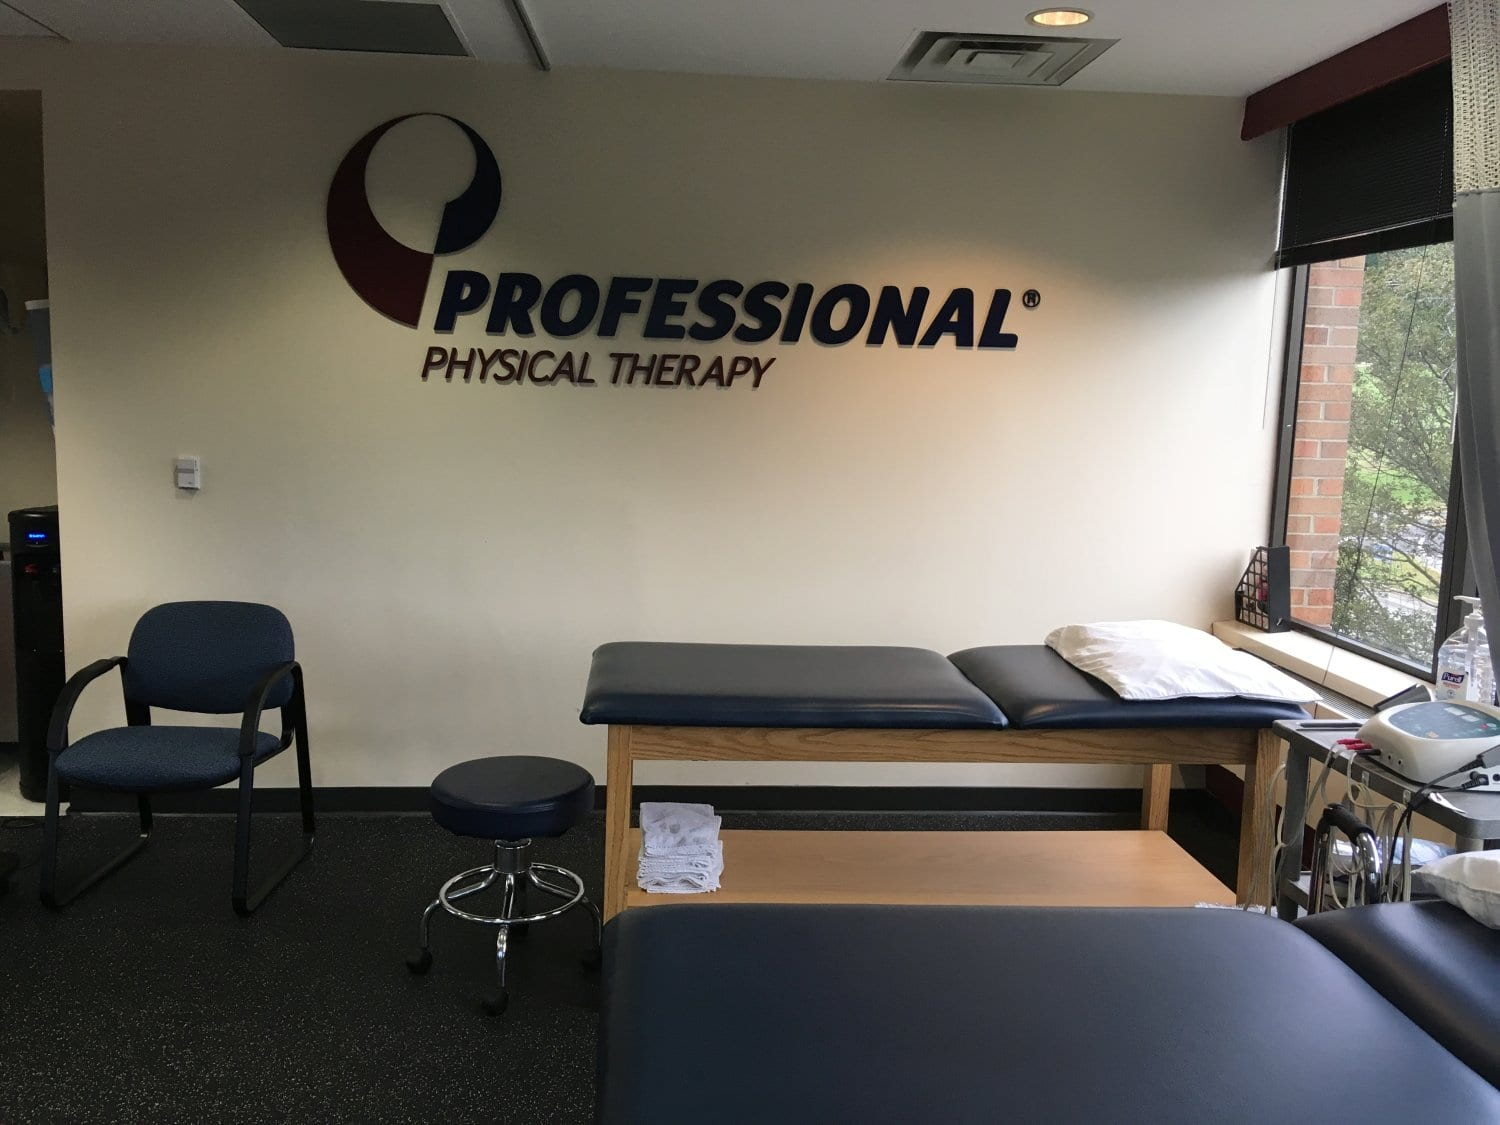 Here is an image of a stretch bed with a sign over it. The sign says Professional Physical Therapy. This is in the training room at our clinic in Oradell, New Jersey.